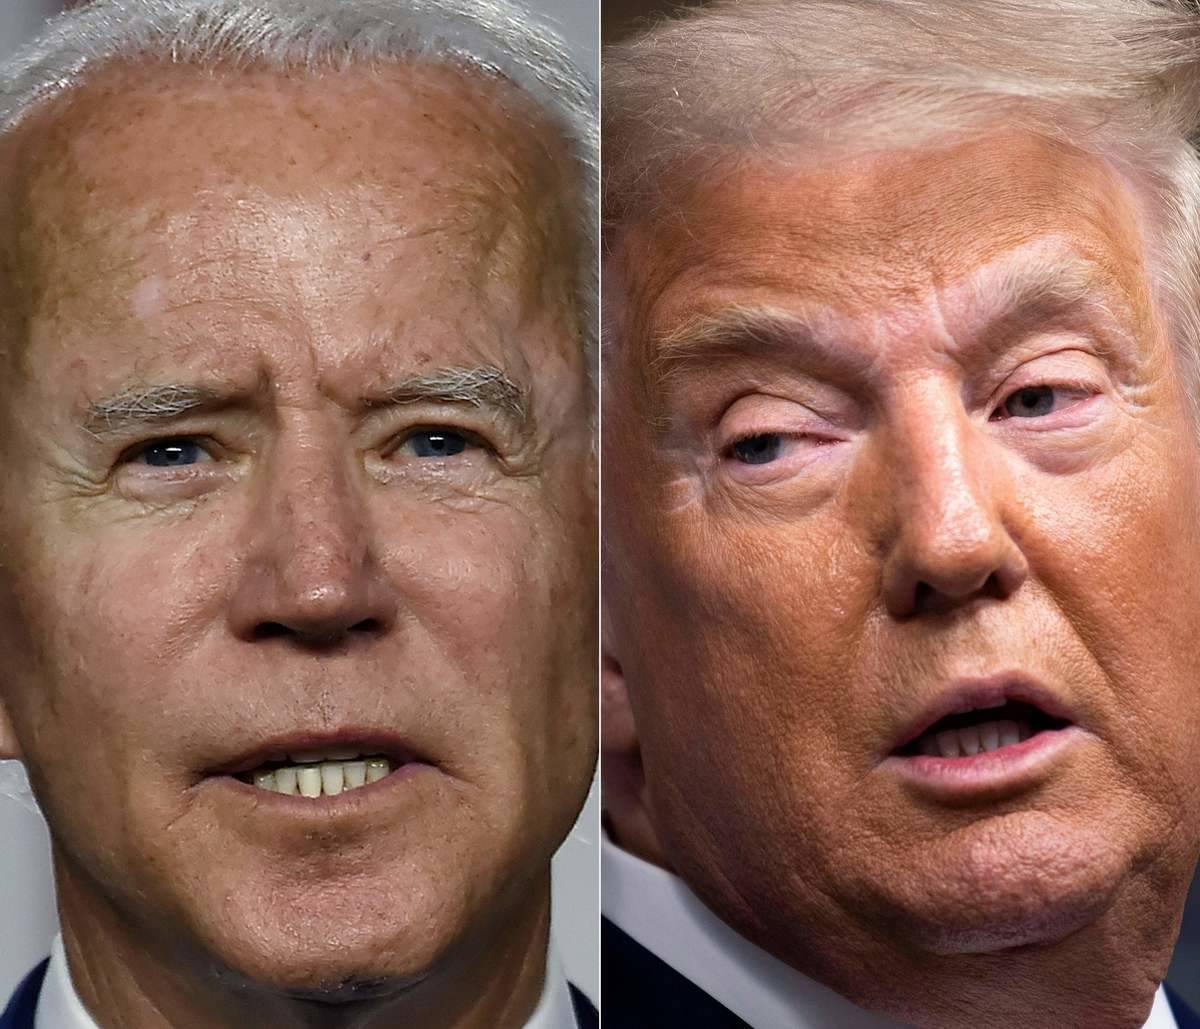 biden and trump side by side